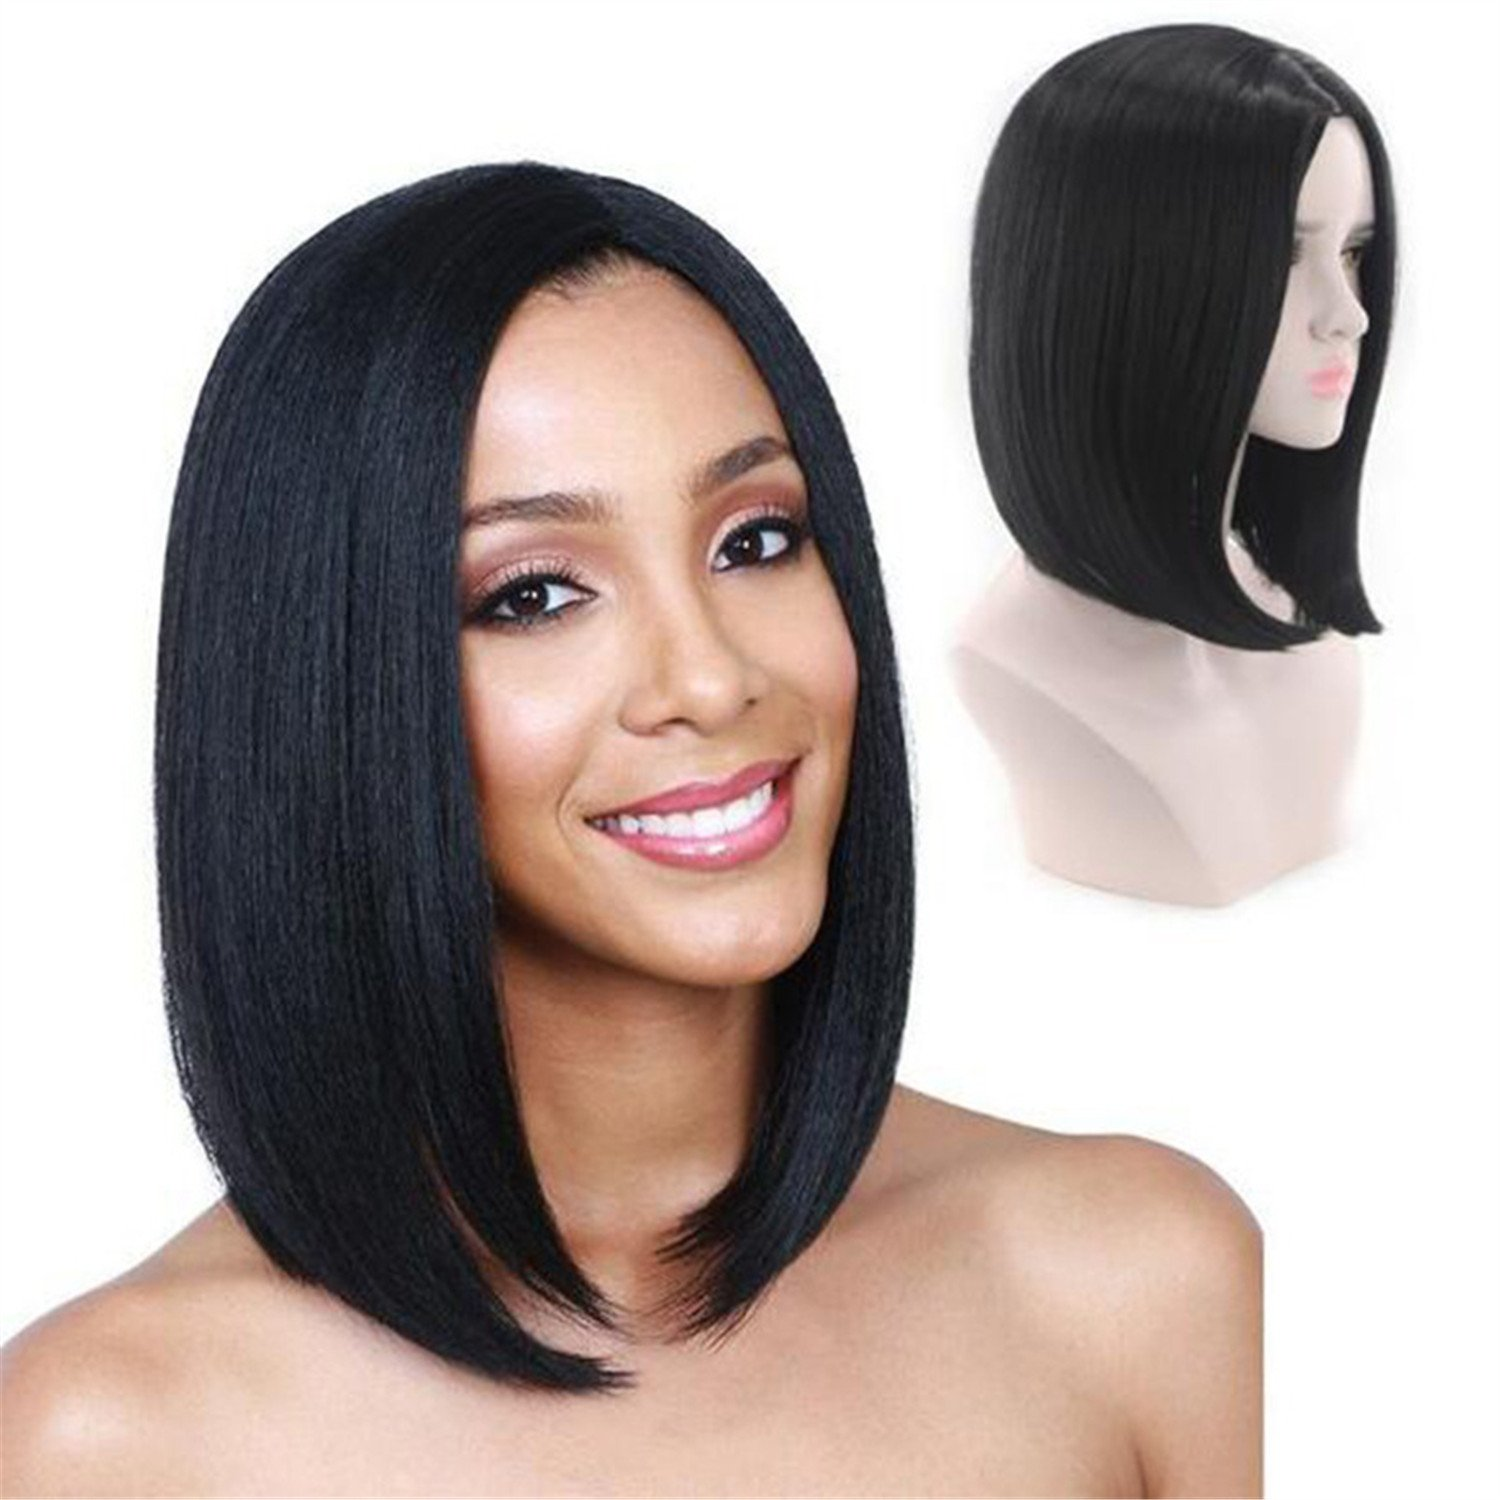 Mufly Bob Wig Short Human Hair Wigs For Black Women Silky Straight Lace Front Wigs Full Lace Wigs with Baby Hair Brazilian Heat Resistant Replacement Virgin Hair 14''